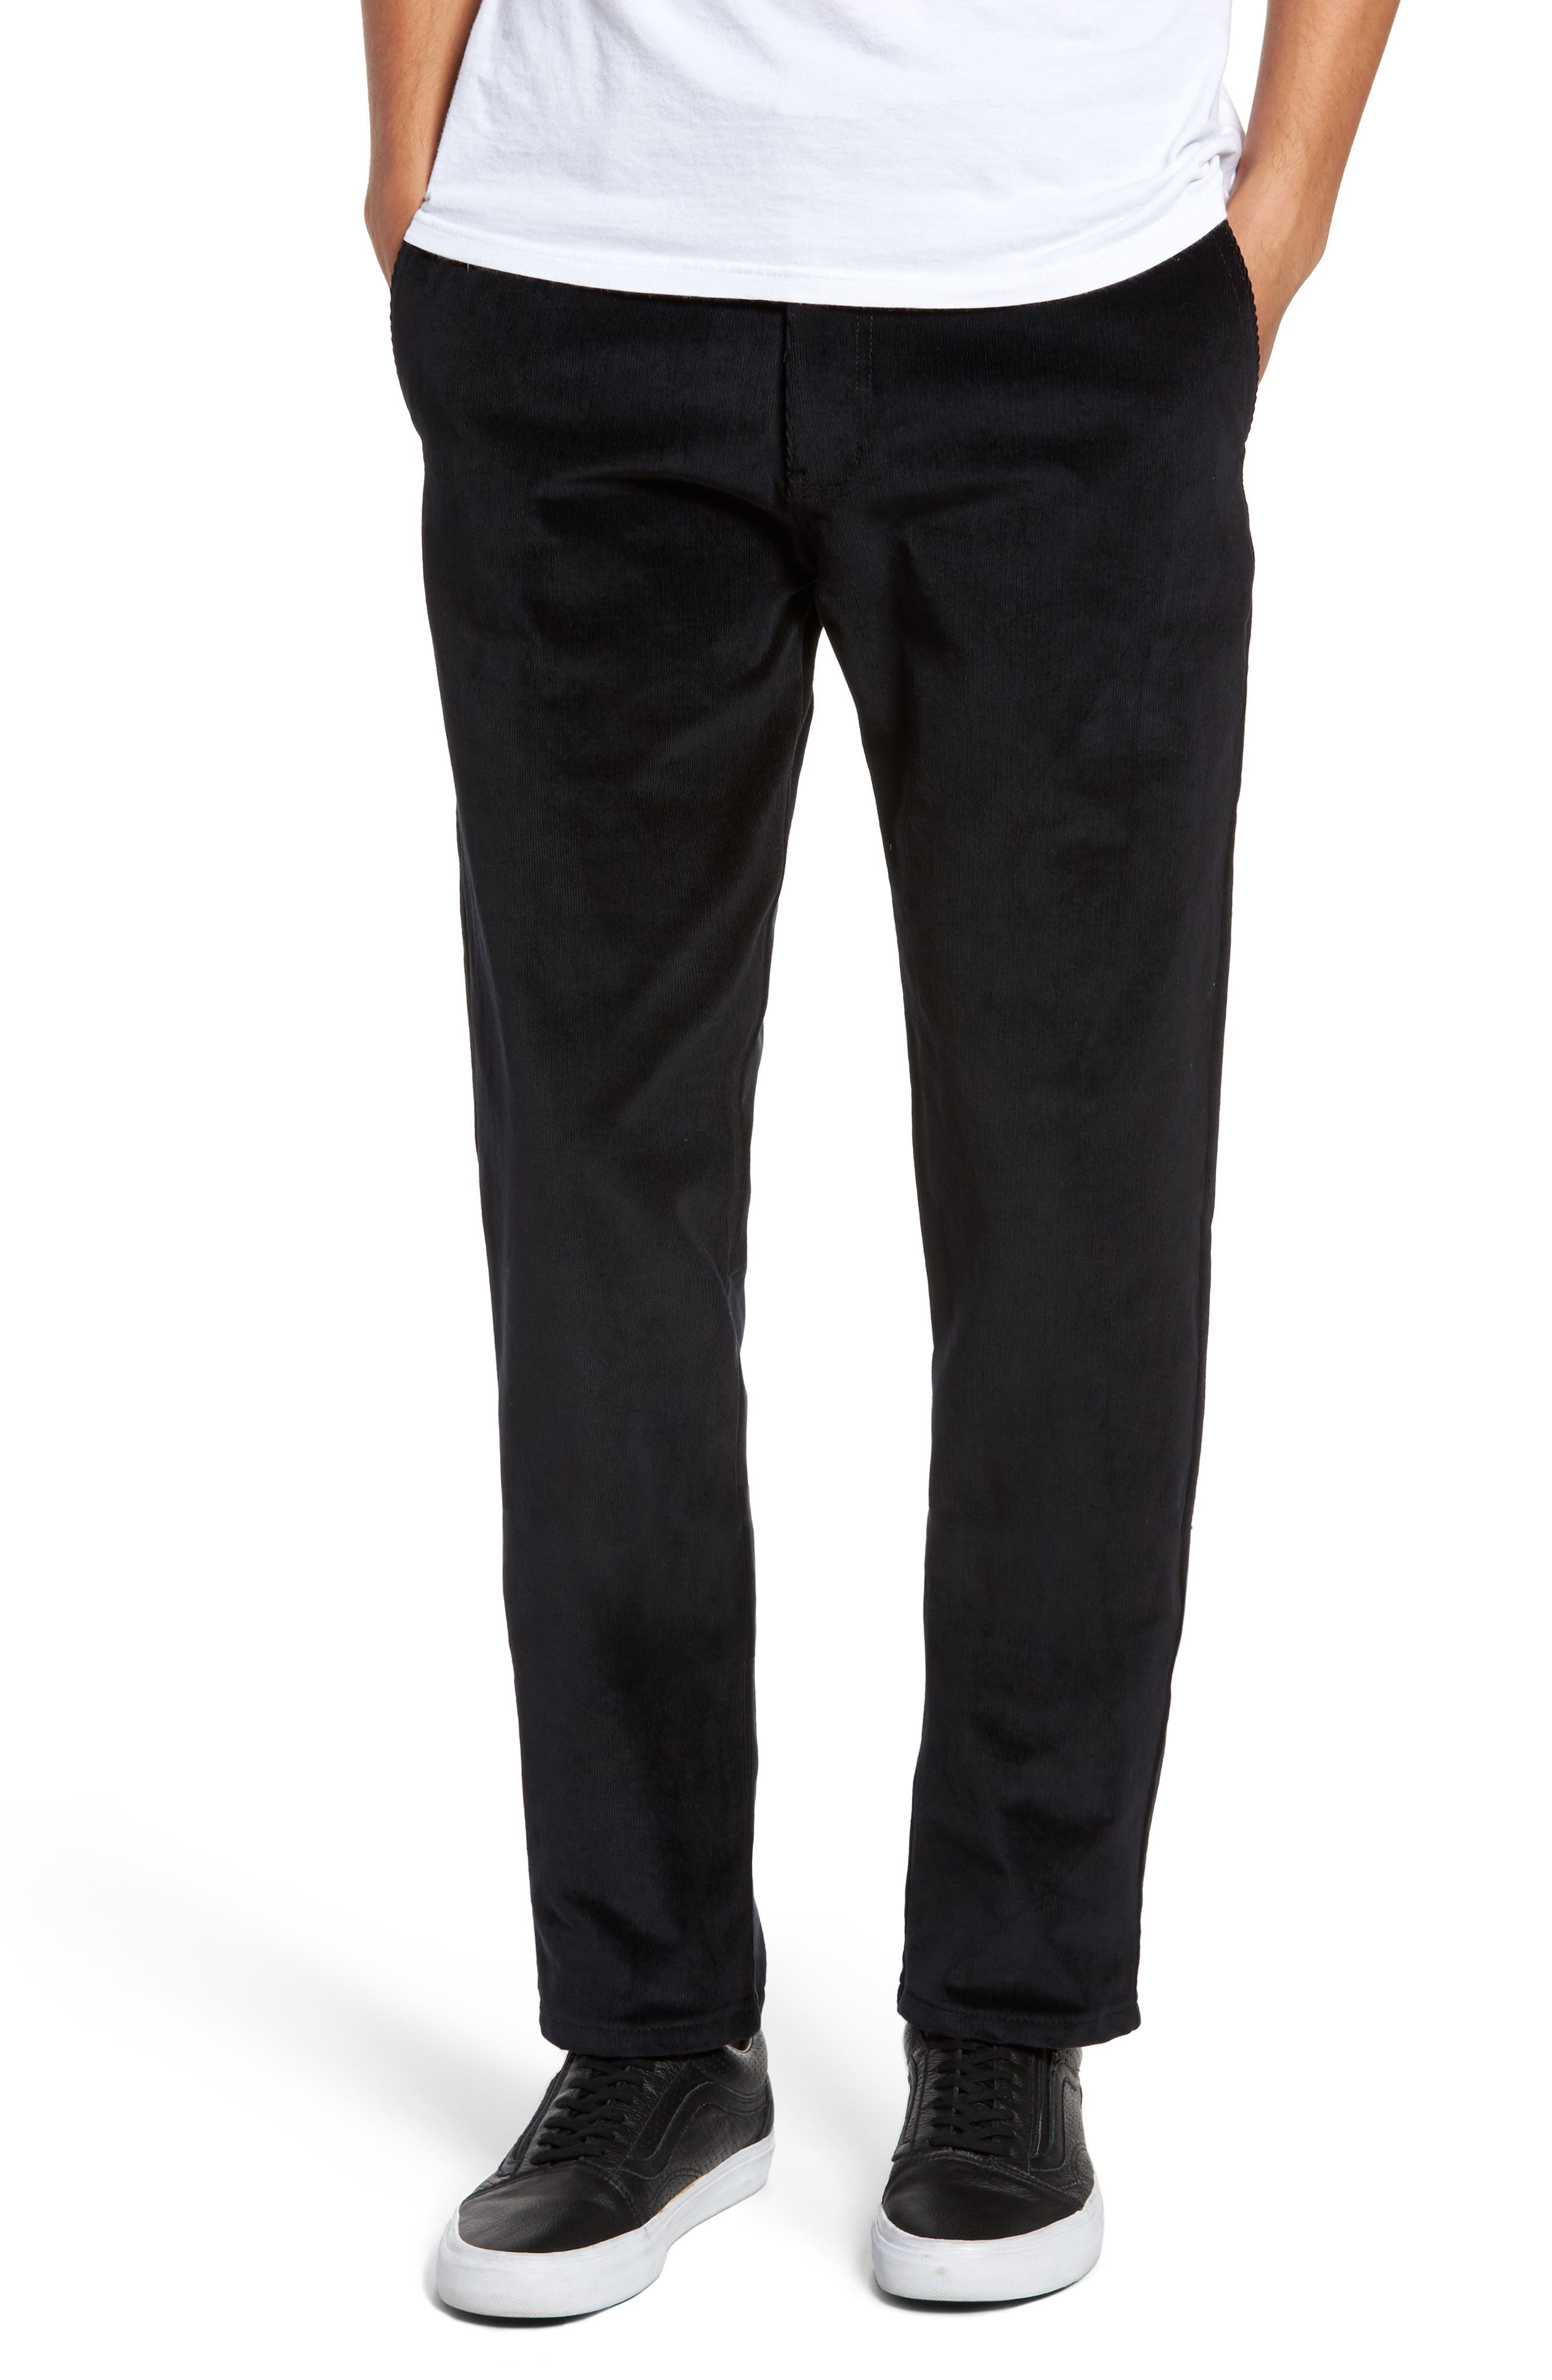 Naked & Famous Slim Chino Slim Fit Corduroy Pants